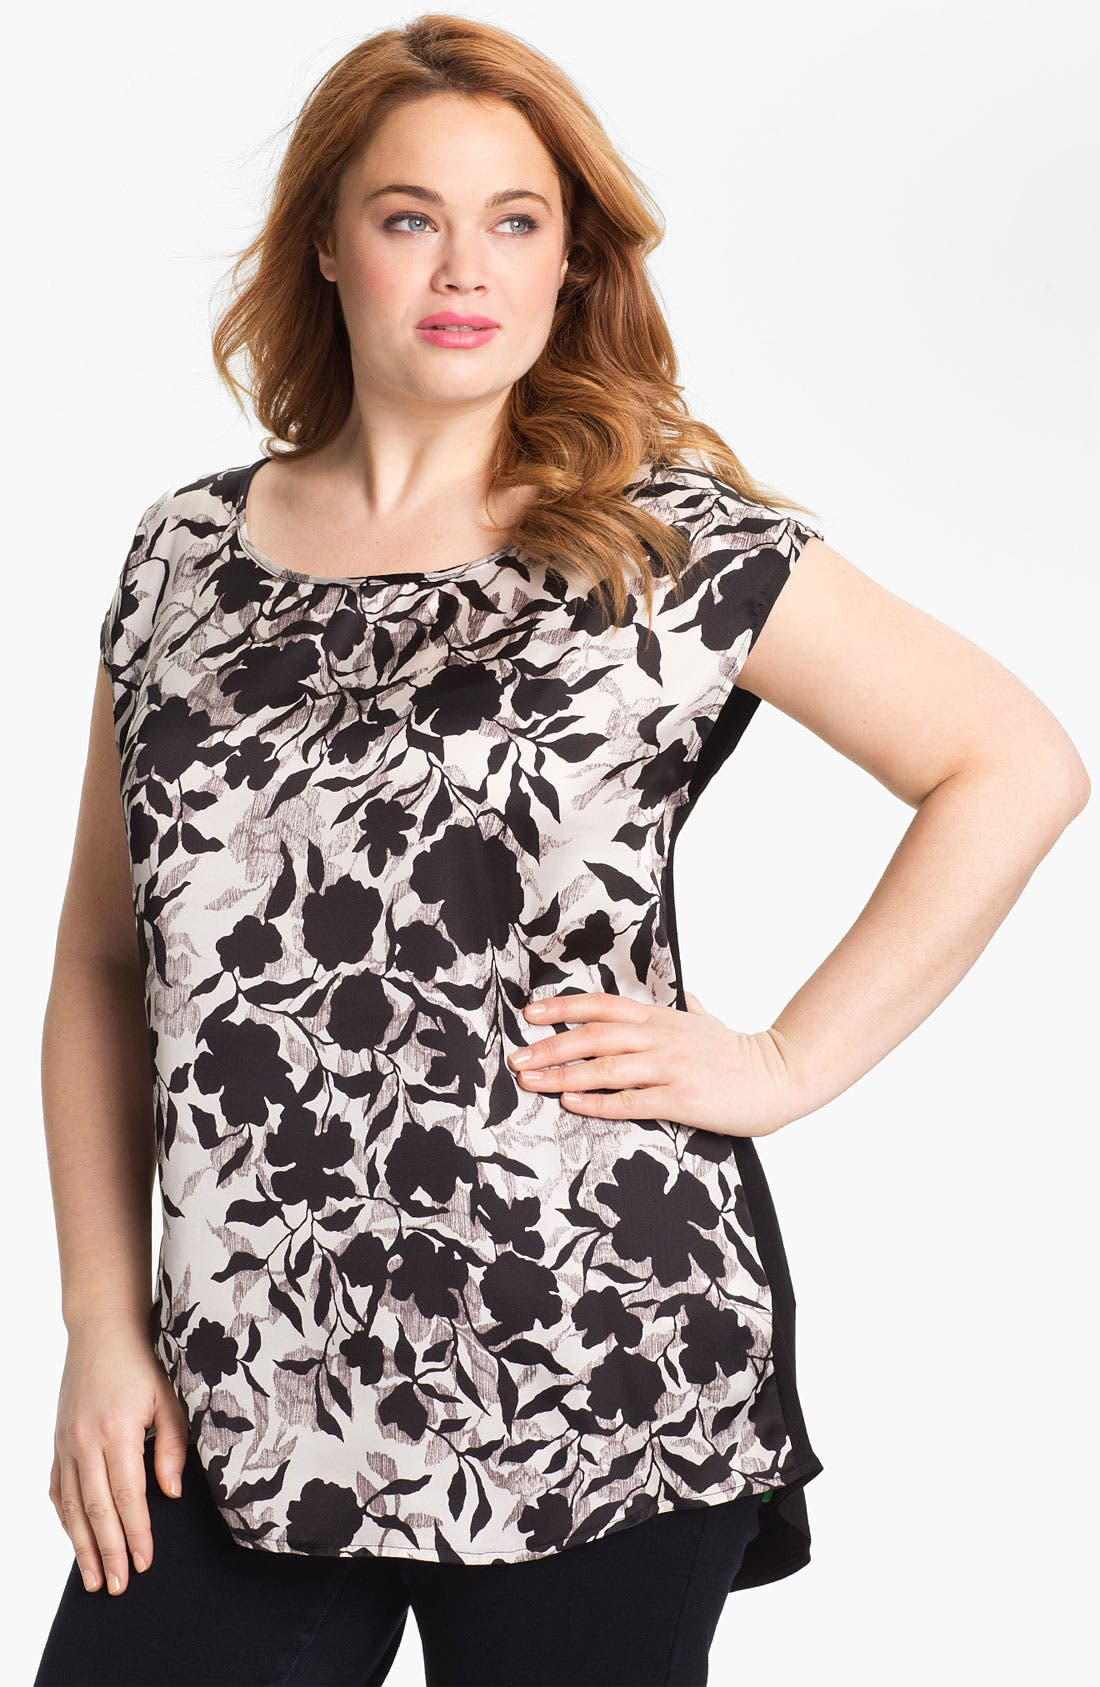 Alternate Image 1 Selected - Evans Floral Print Short Sleeve Top (Plus Size)